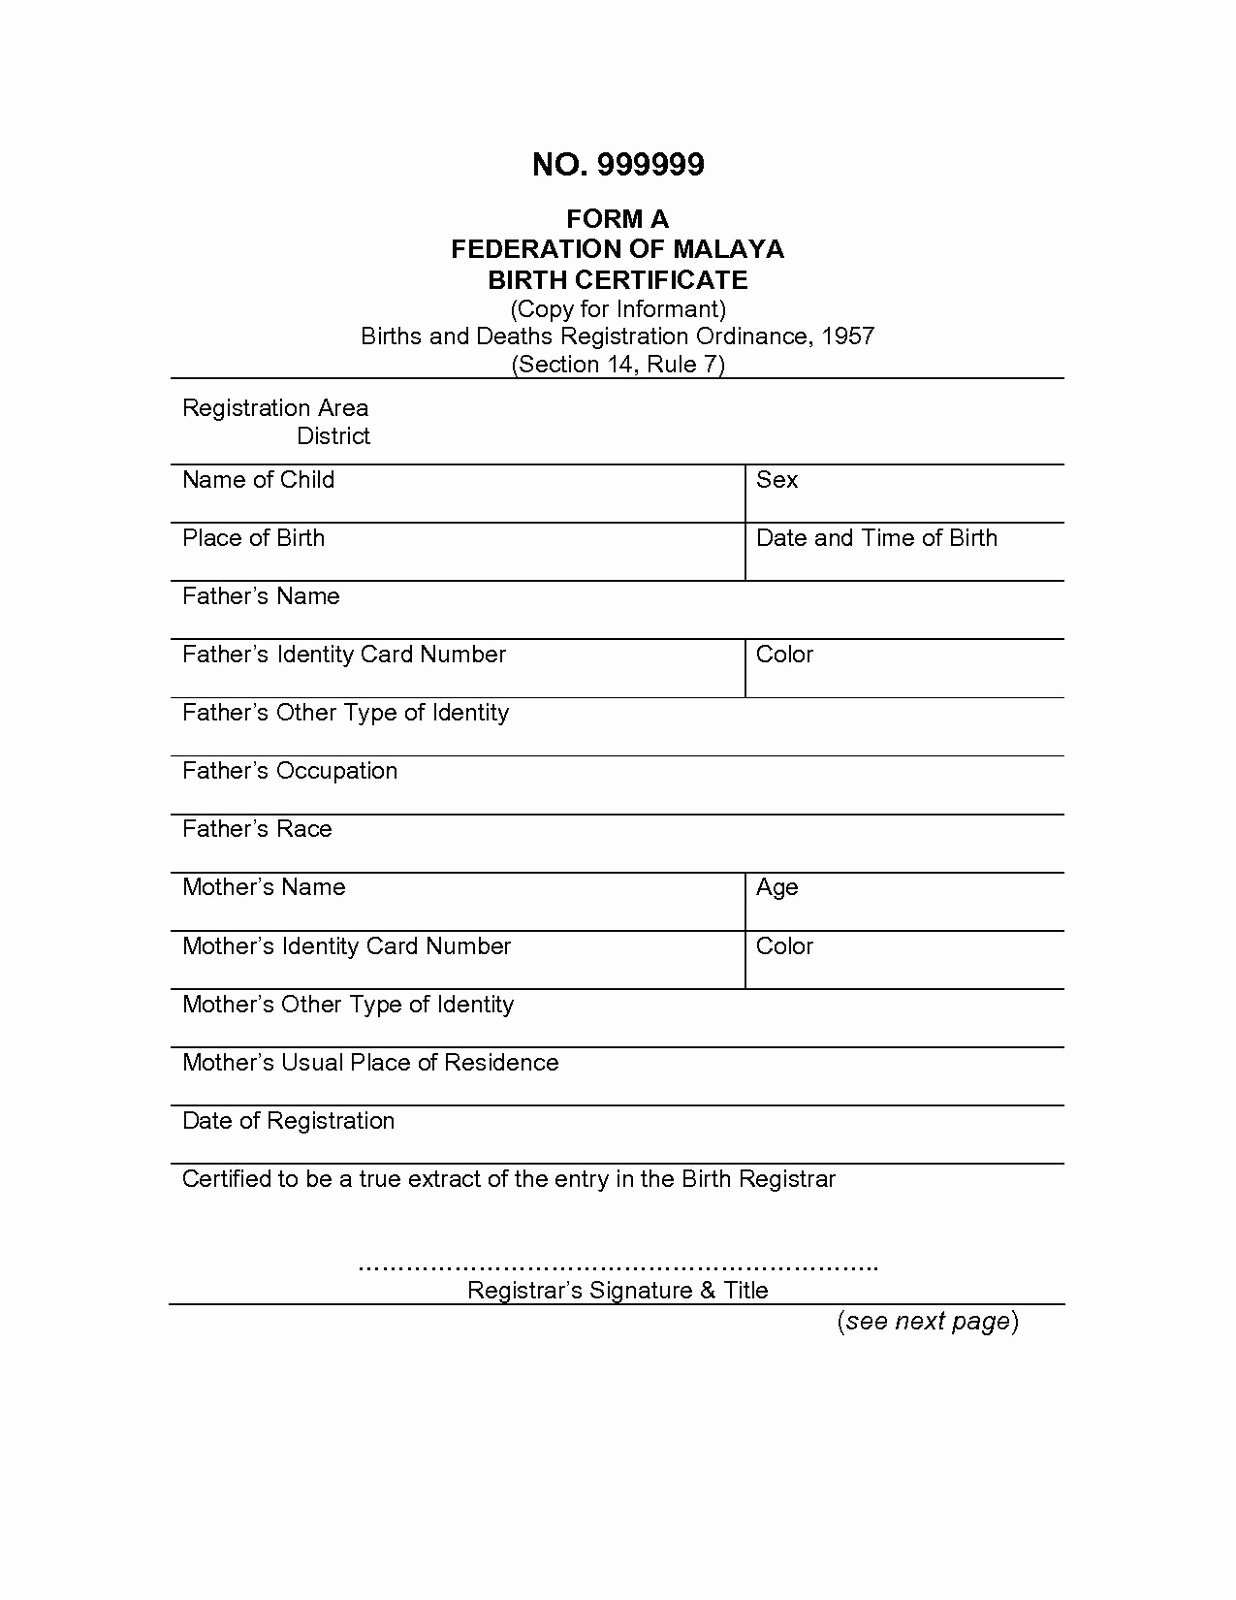 Birth Certificate Translation From Spanish to English Template New Birth Certificate Template Translation